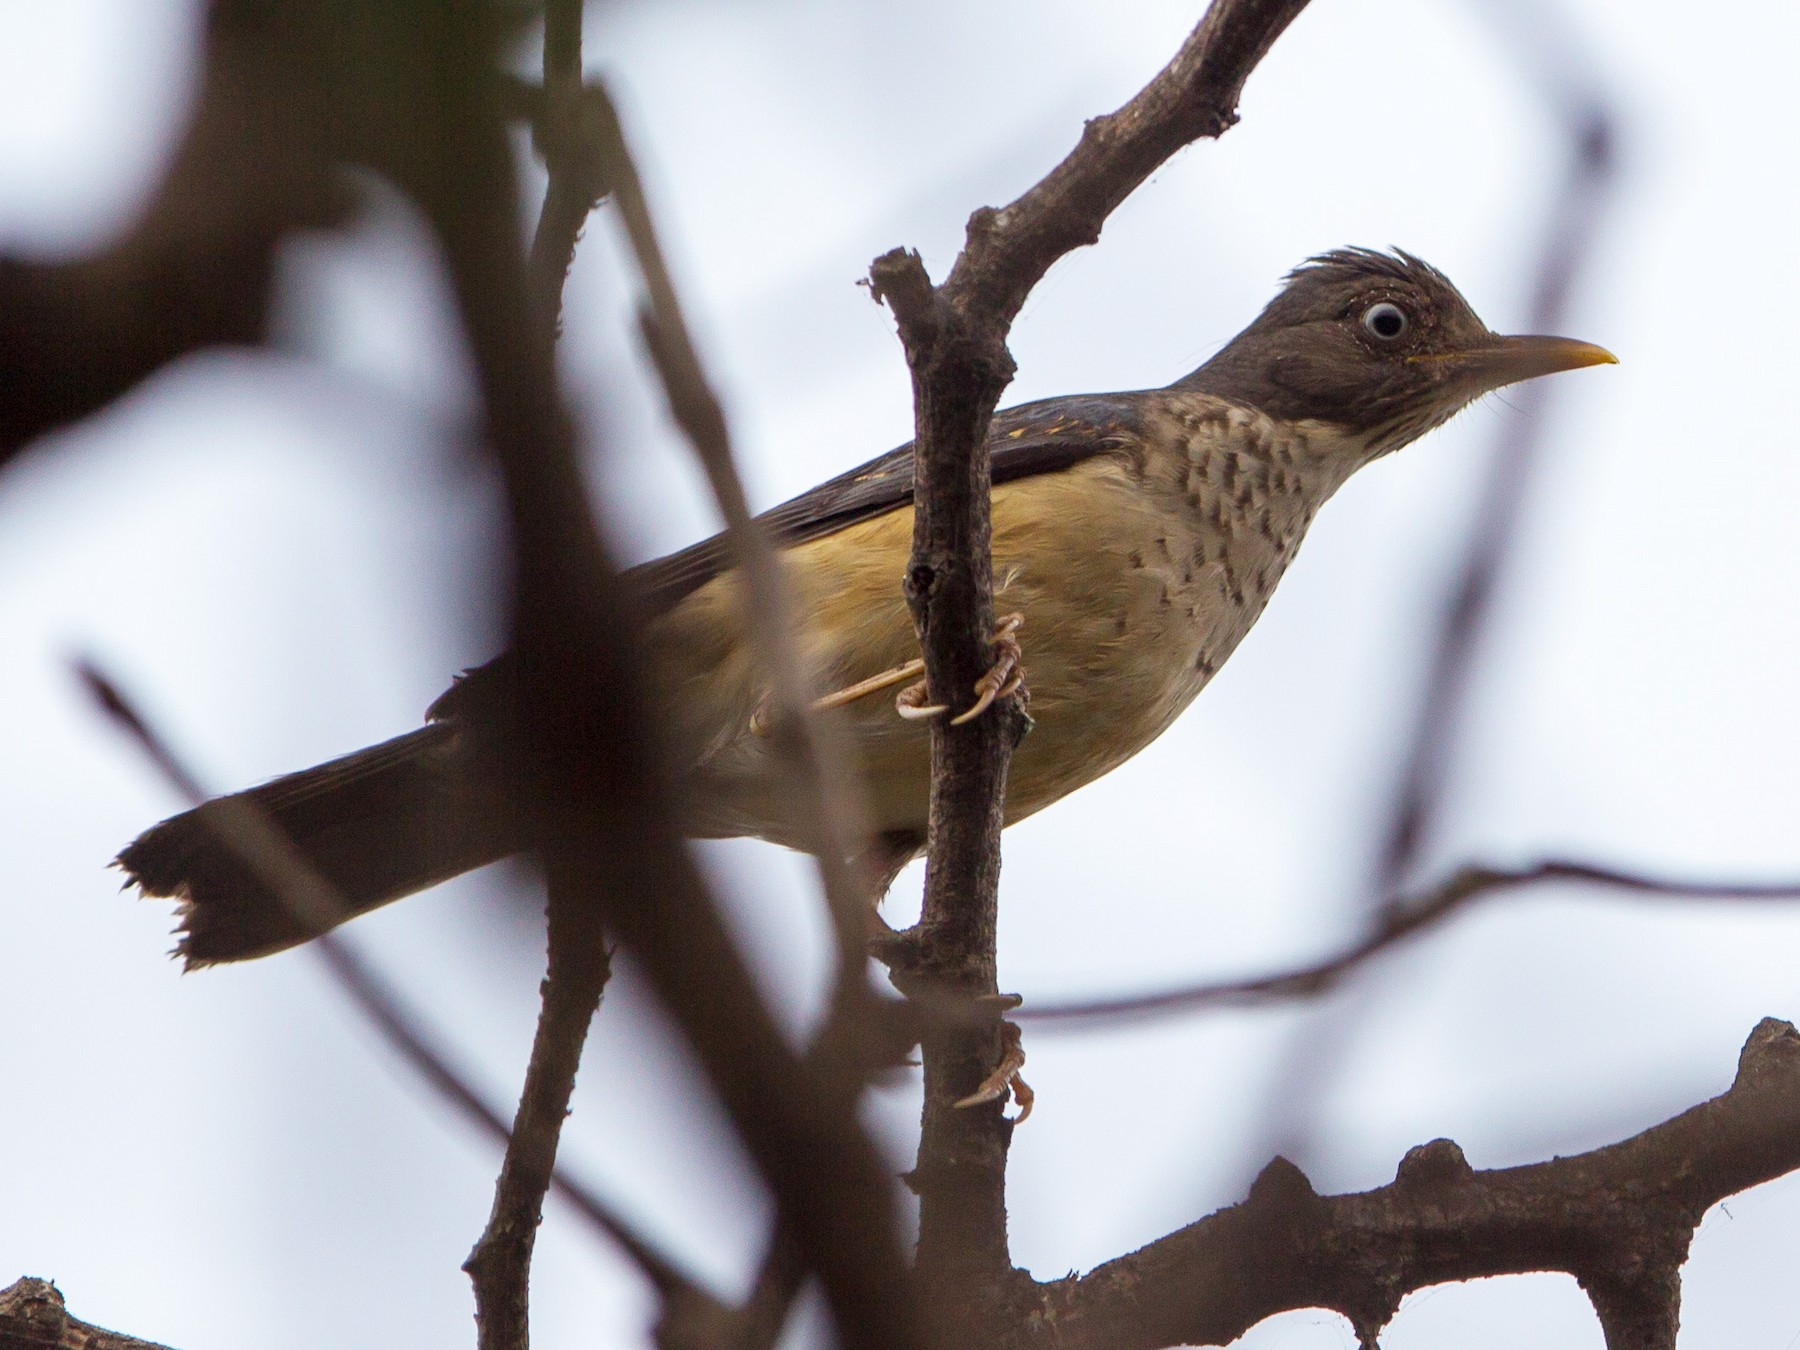 Plumbeous-backed Thrush - Kevin Berkoff